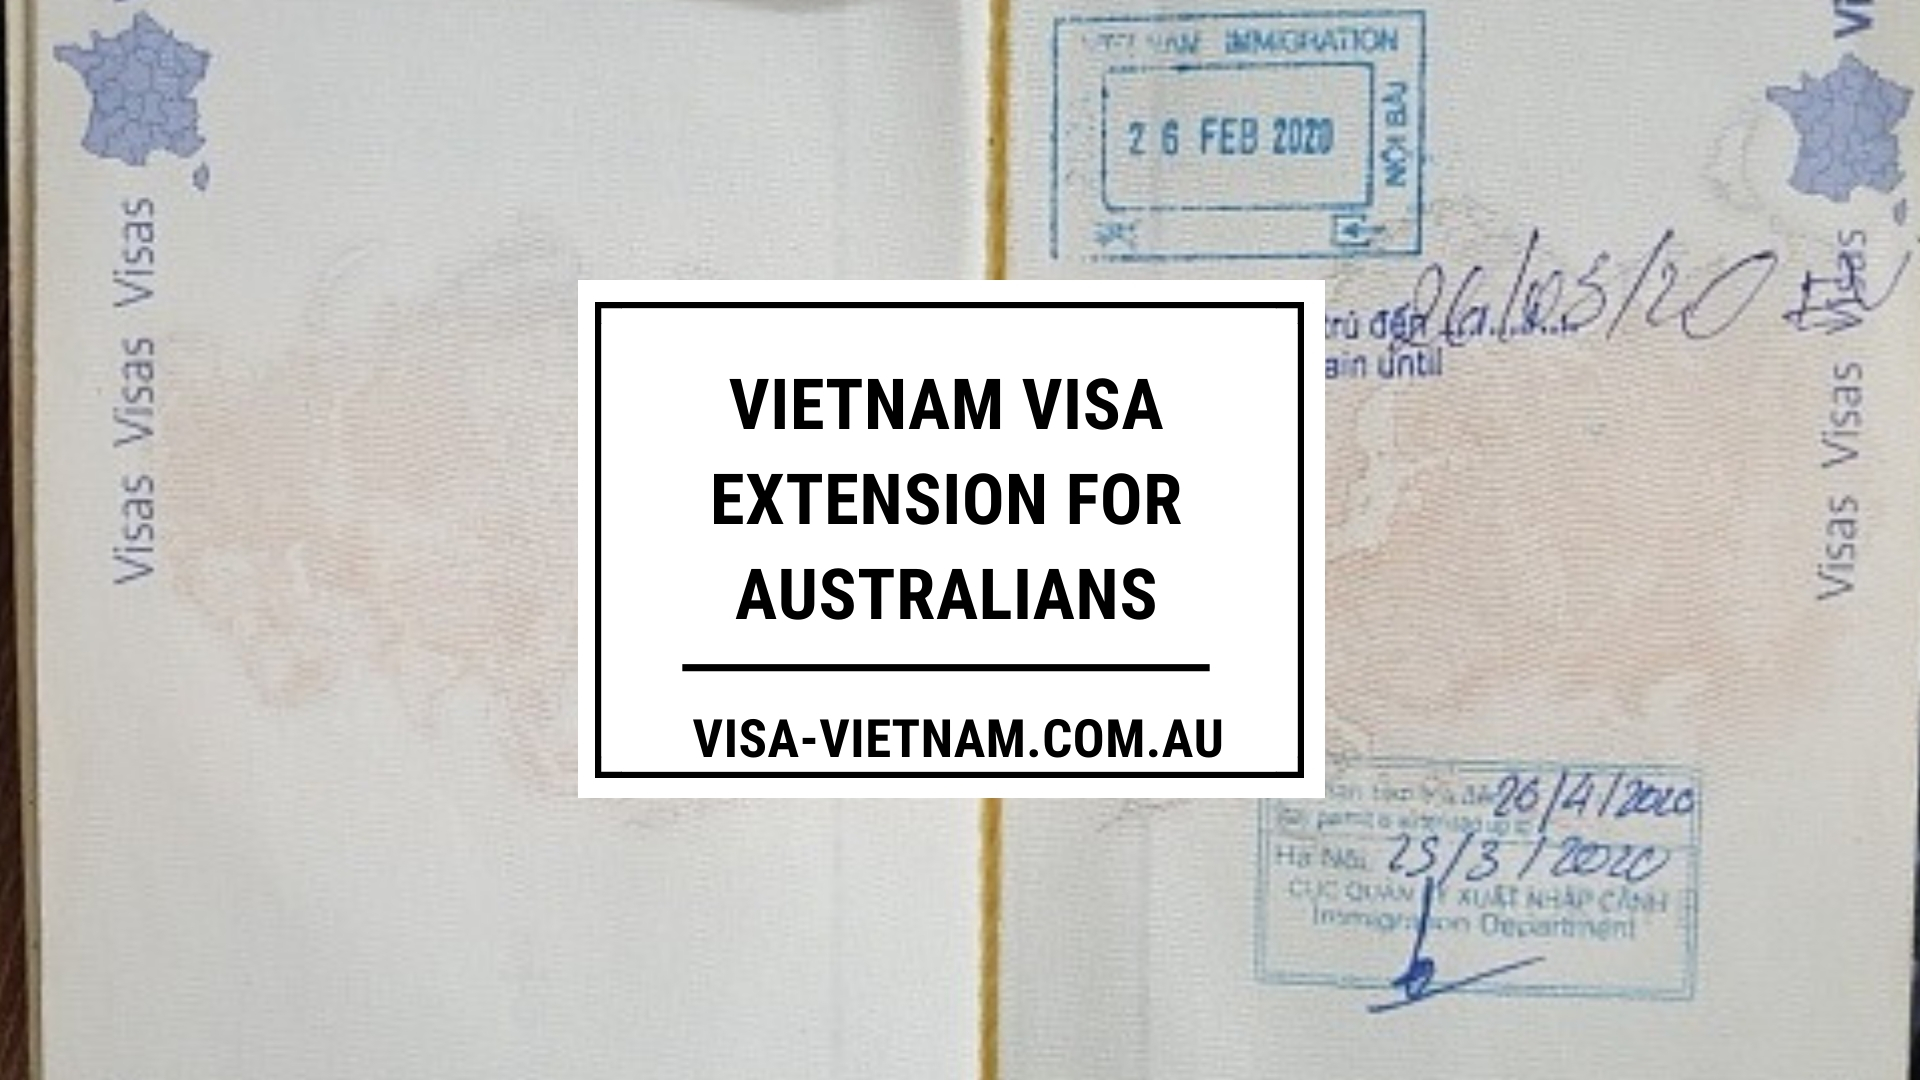 Vietnam visa extension for Australians